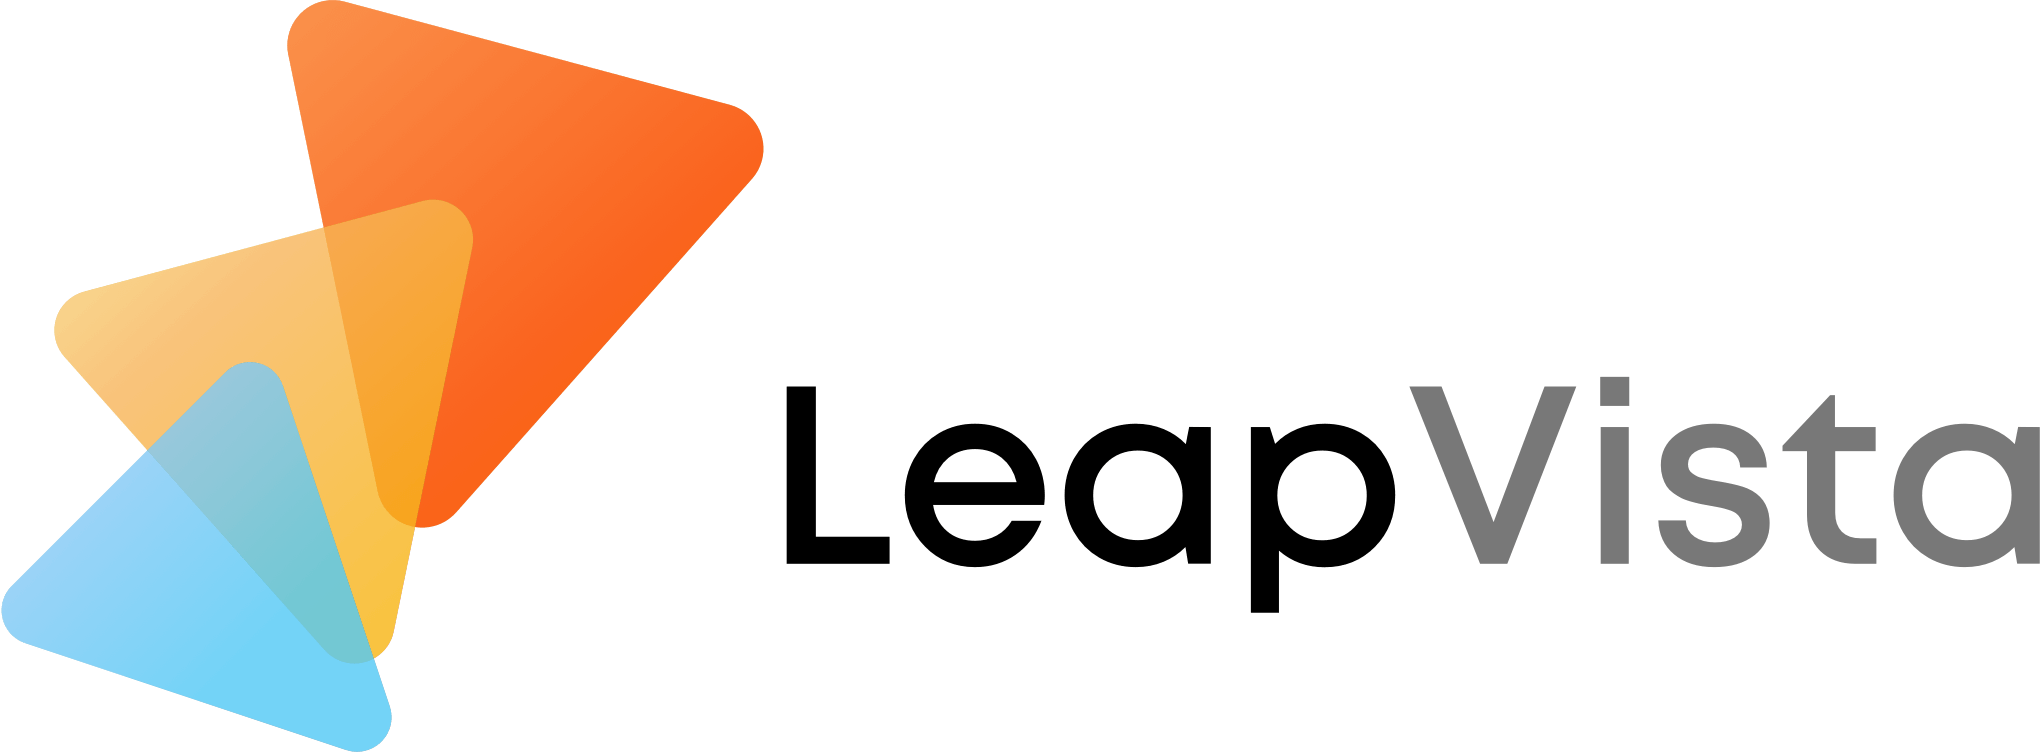 A First Timer's Guide to Setting up a Shopify Shared By LeapVista